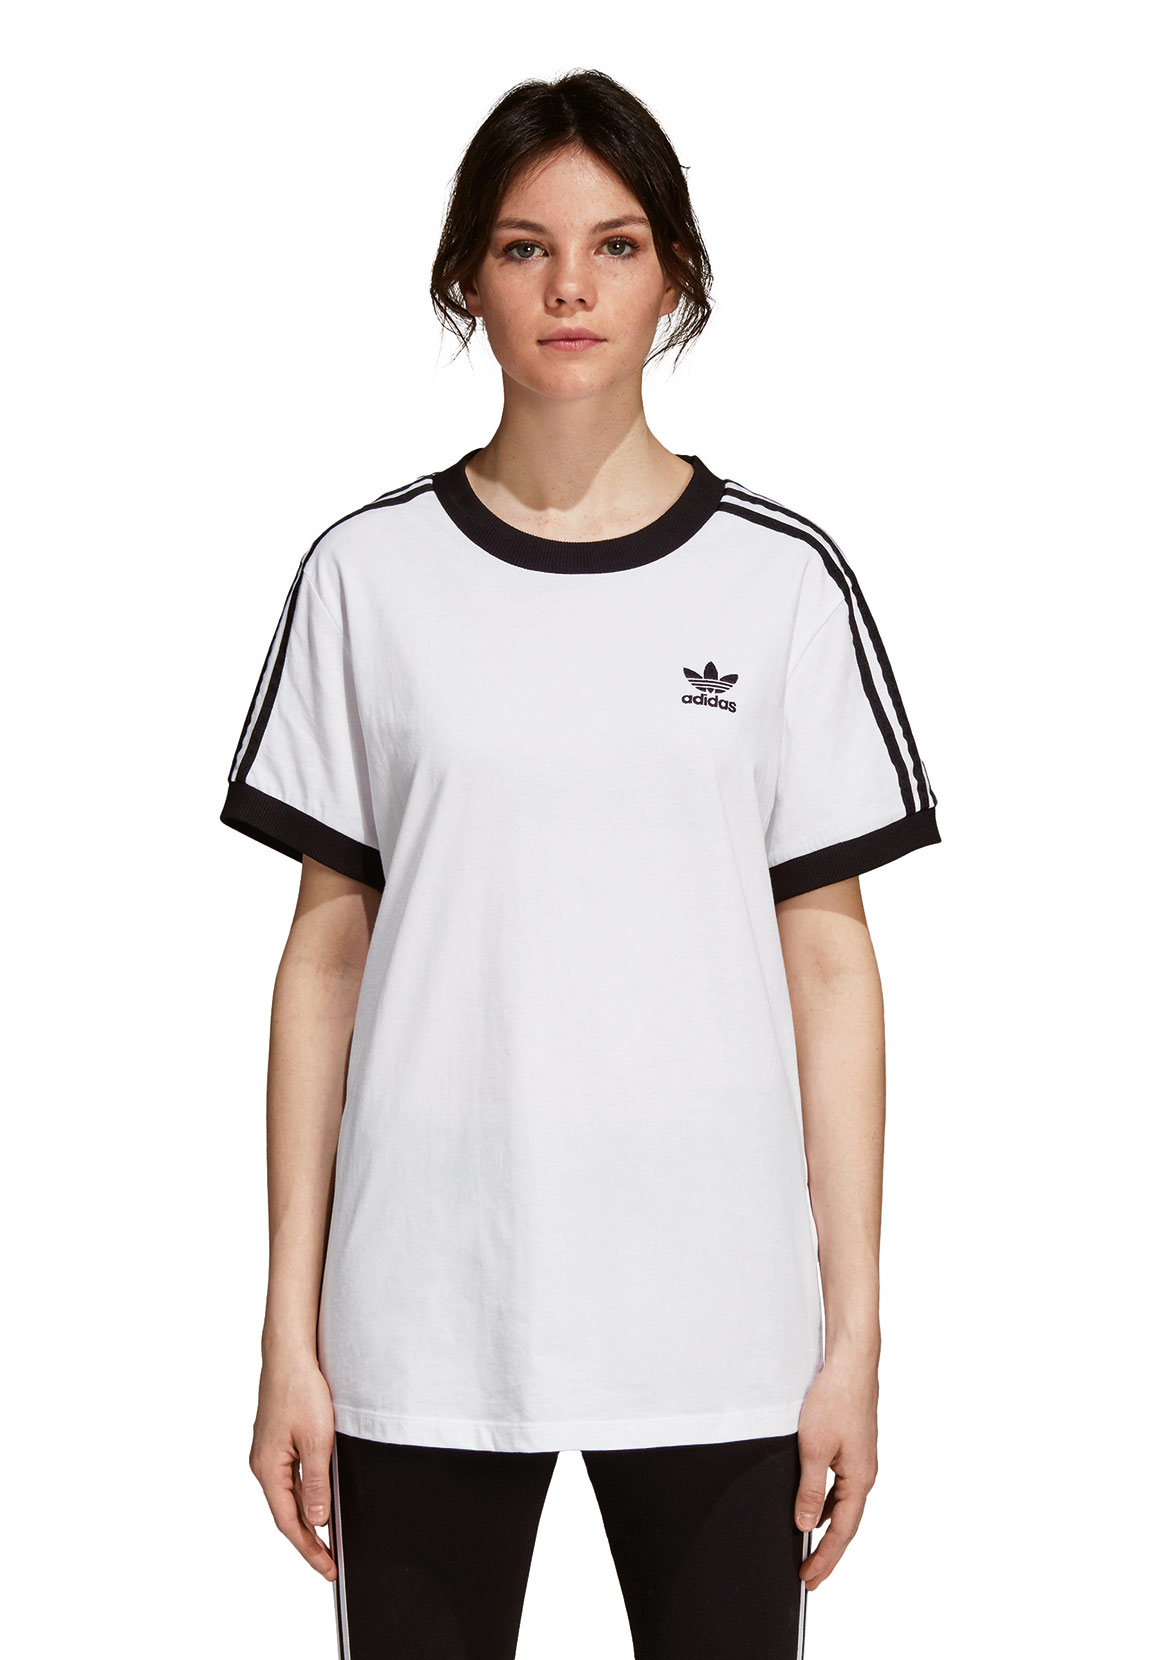 f5cca1a8712a Adidas Originals Damen T-Shirt 3 STRIPES TEE DH3188 Weiß Damen T ...